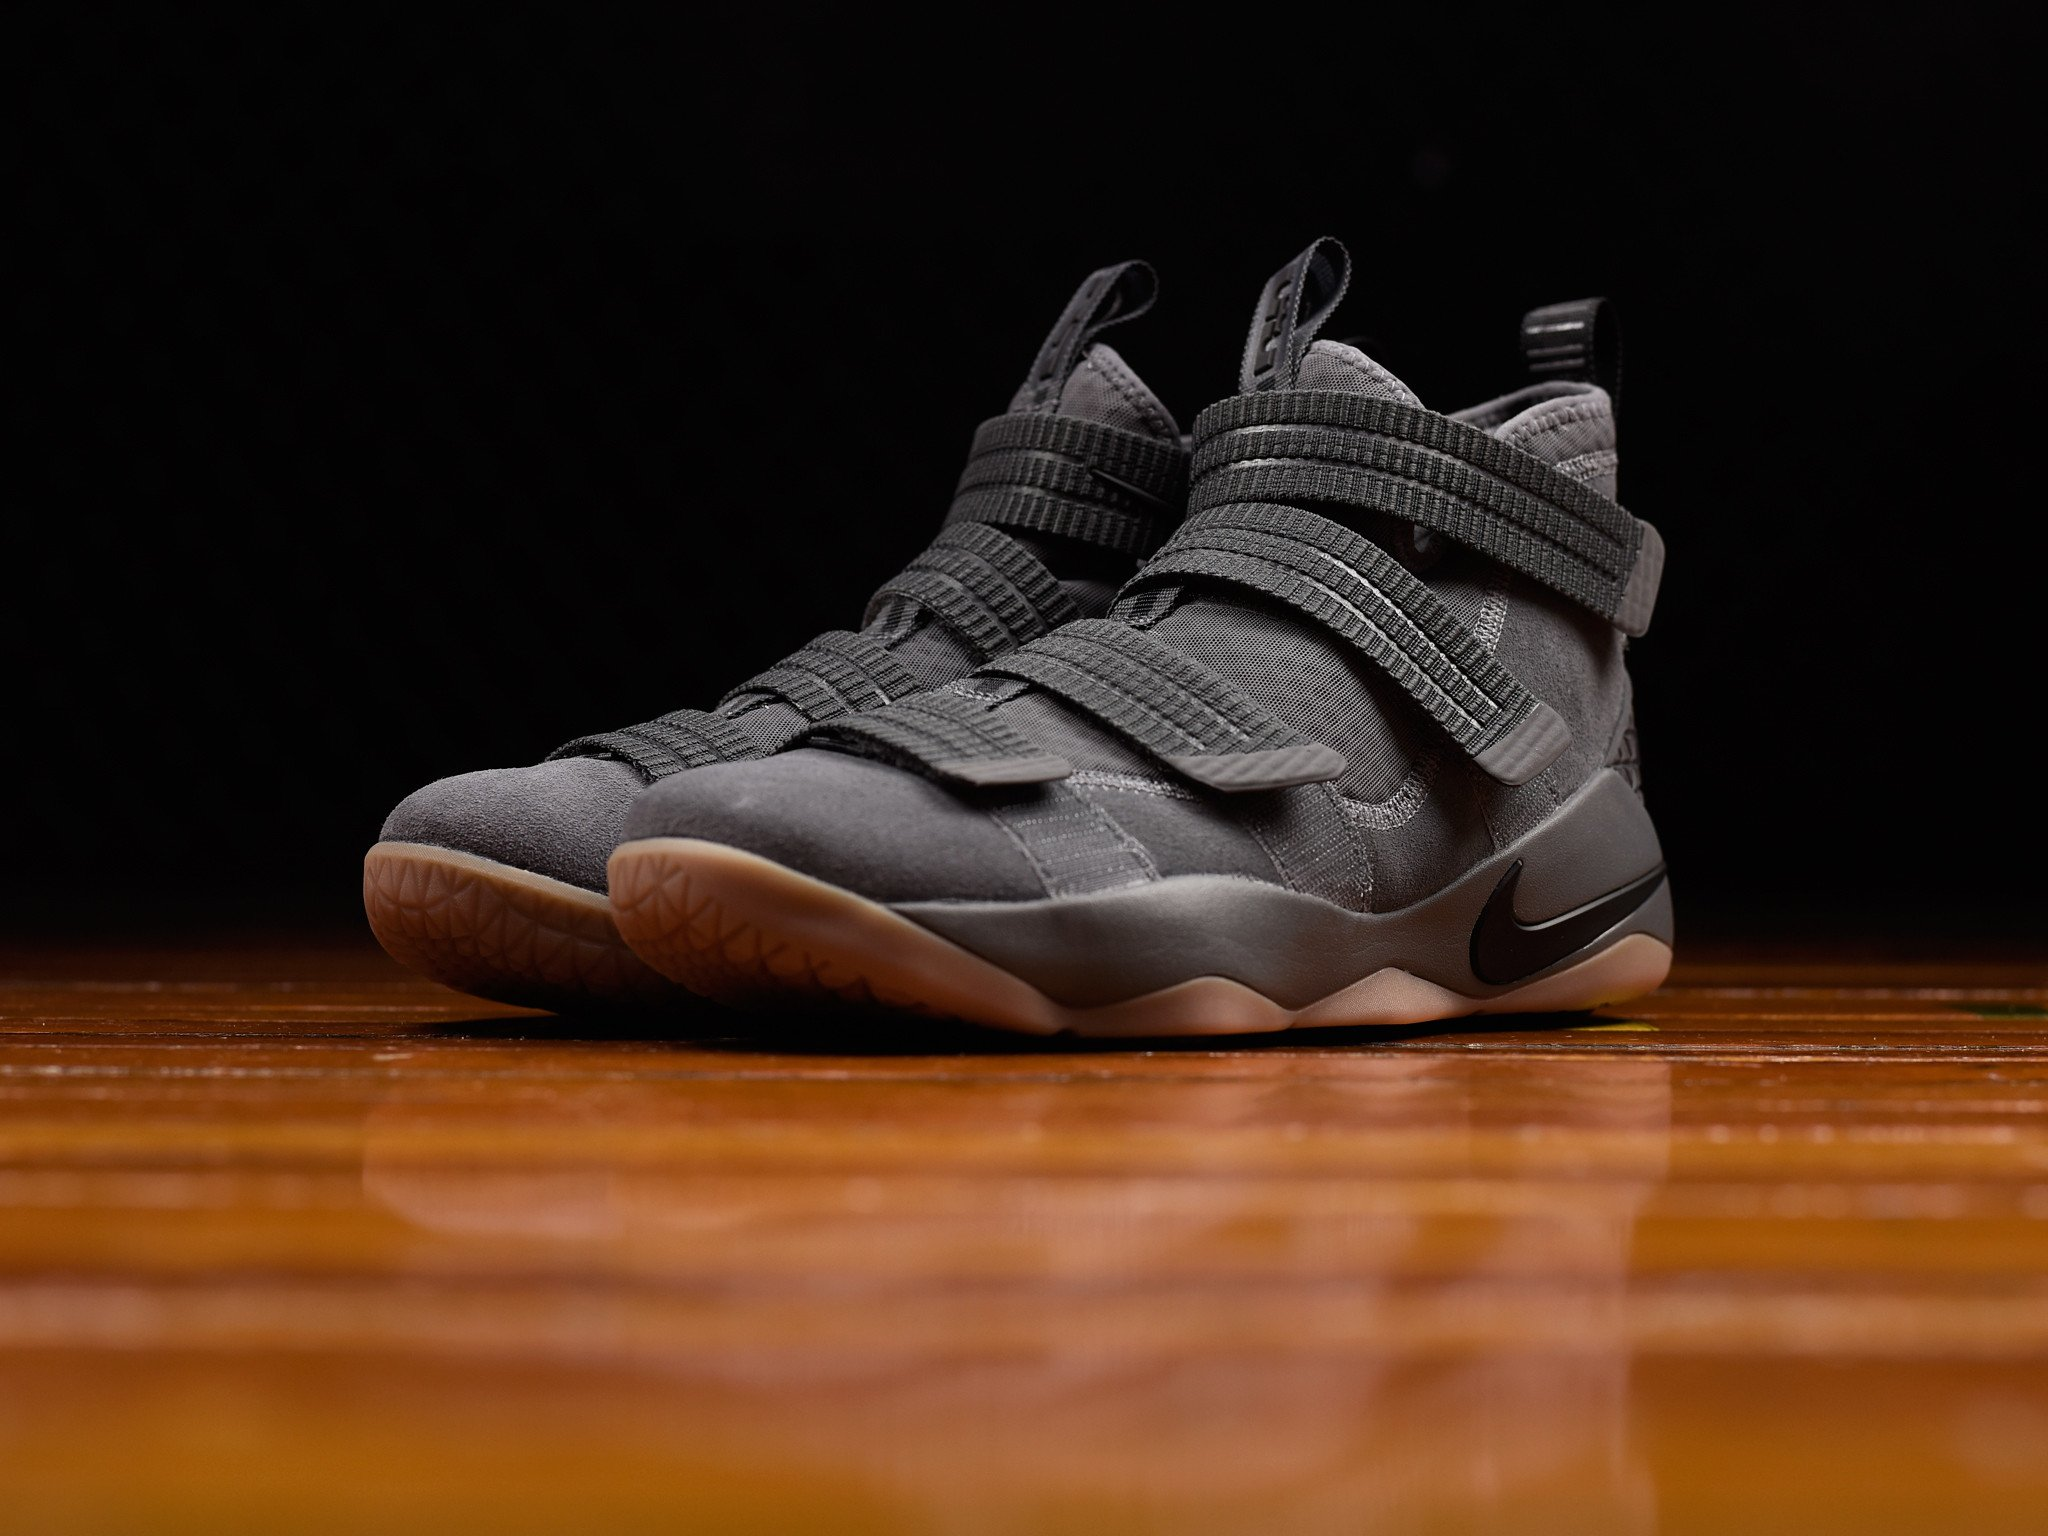 buy popular af5bf 0455b The Nike LeBron Soldier 11 has Dropped in 'Grey Gum ...